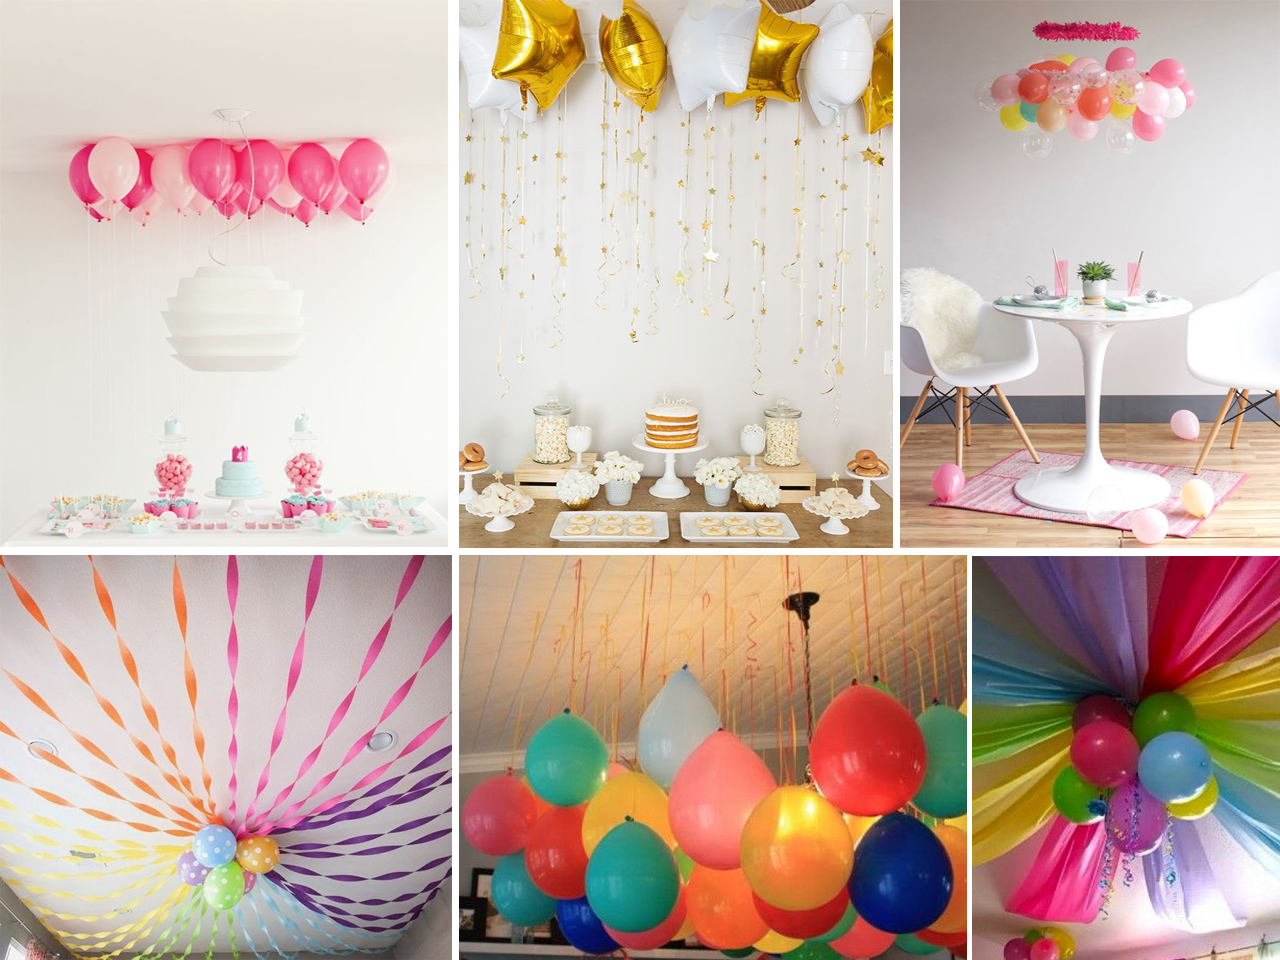 Descubre c mo decorar con globos con estas fant sticas ideas for Como decorar el techo de una recamara